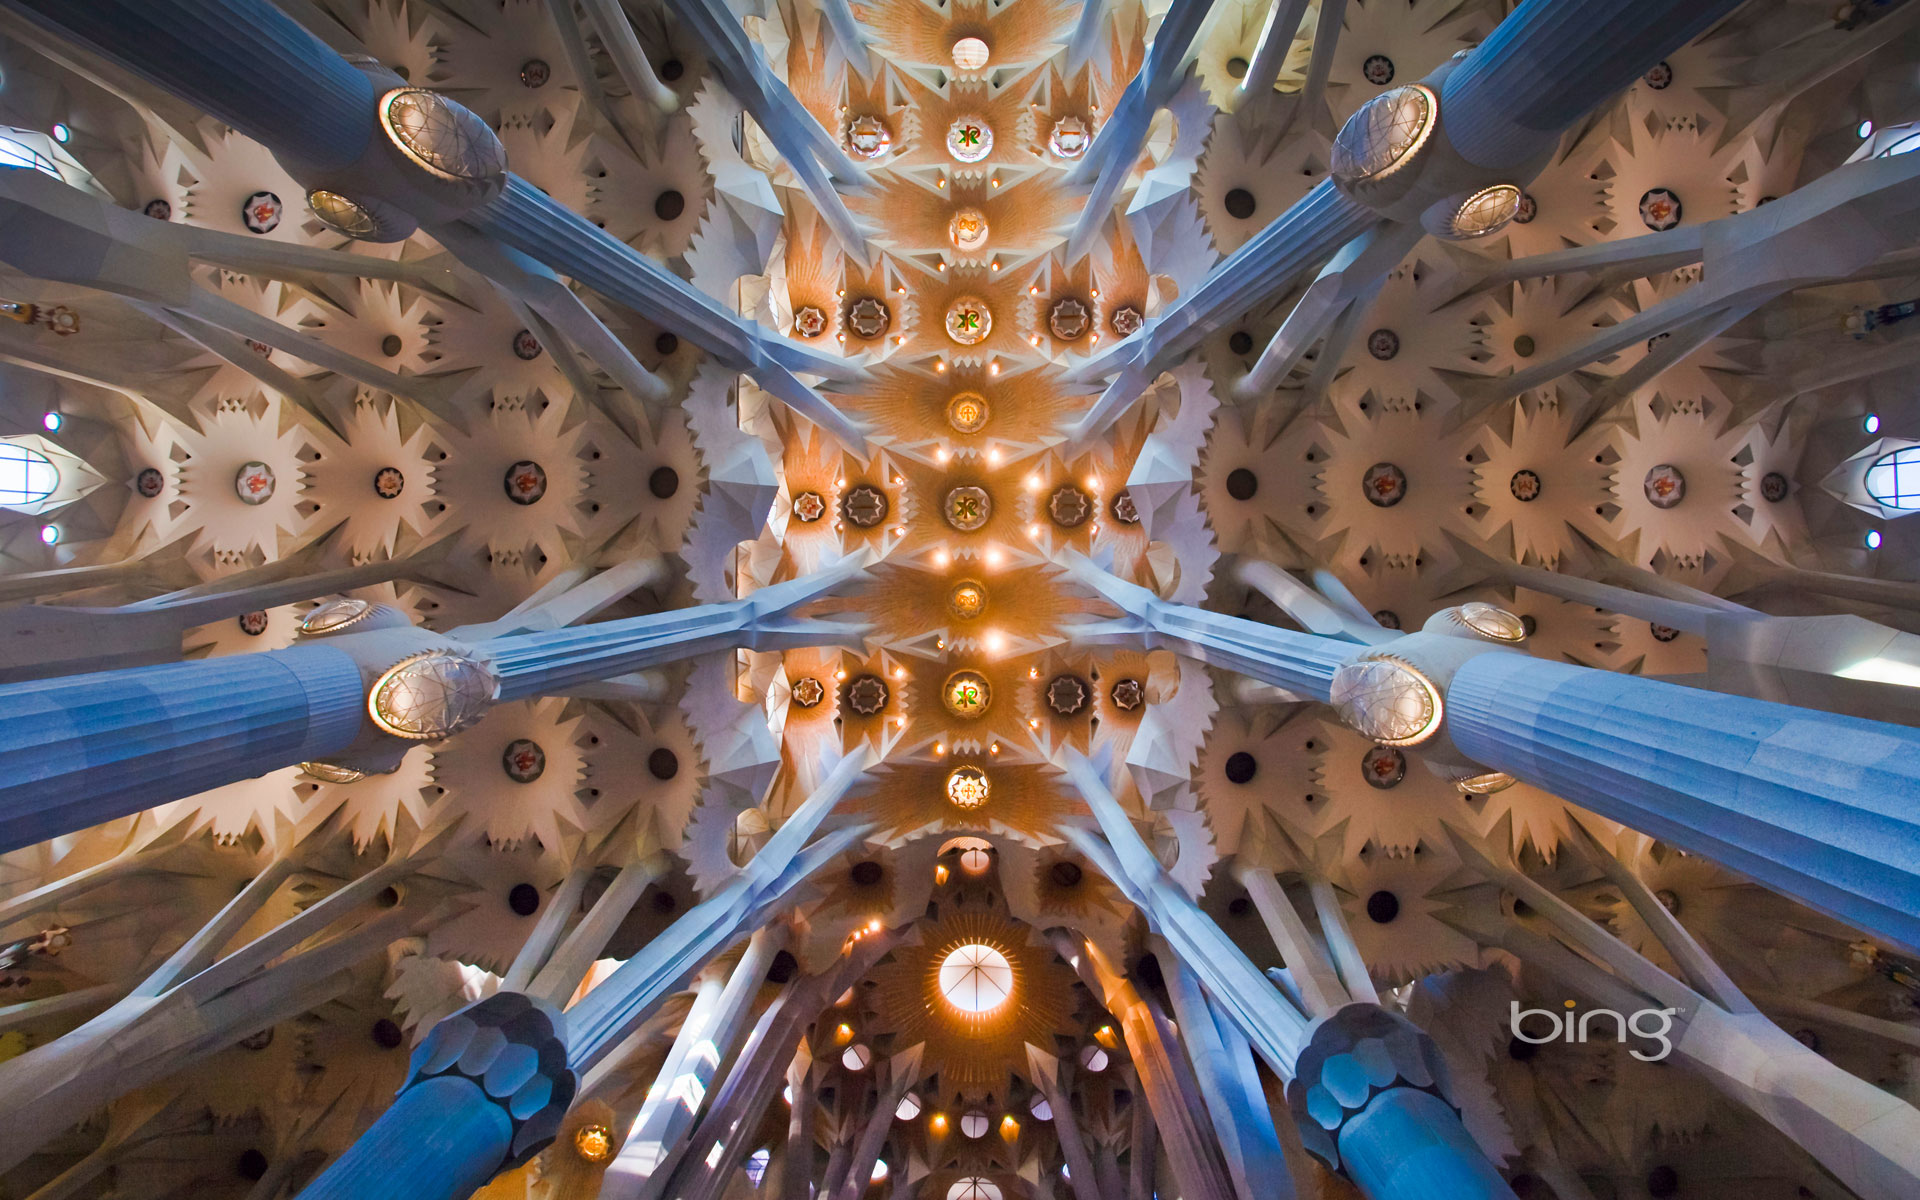 Ceiling of the Sagrada Família in Barcelona, Spain